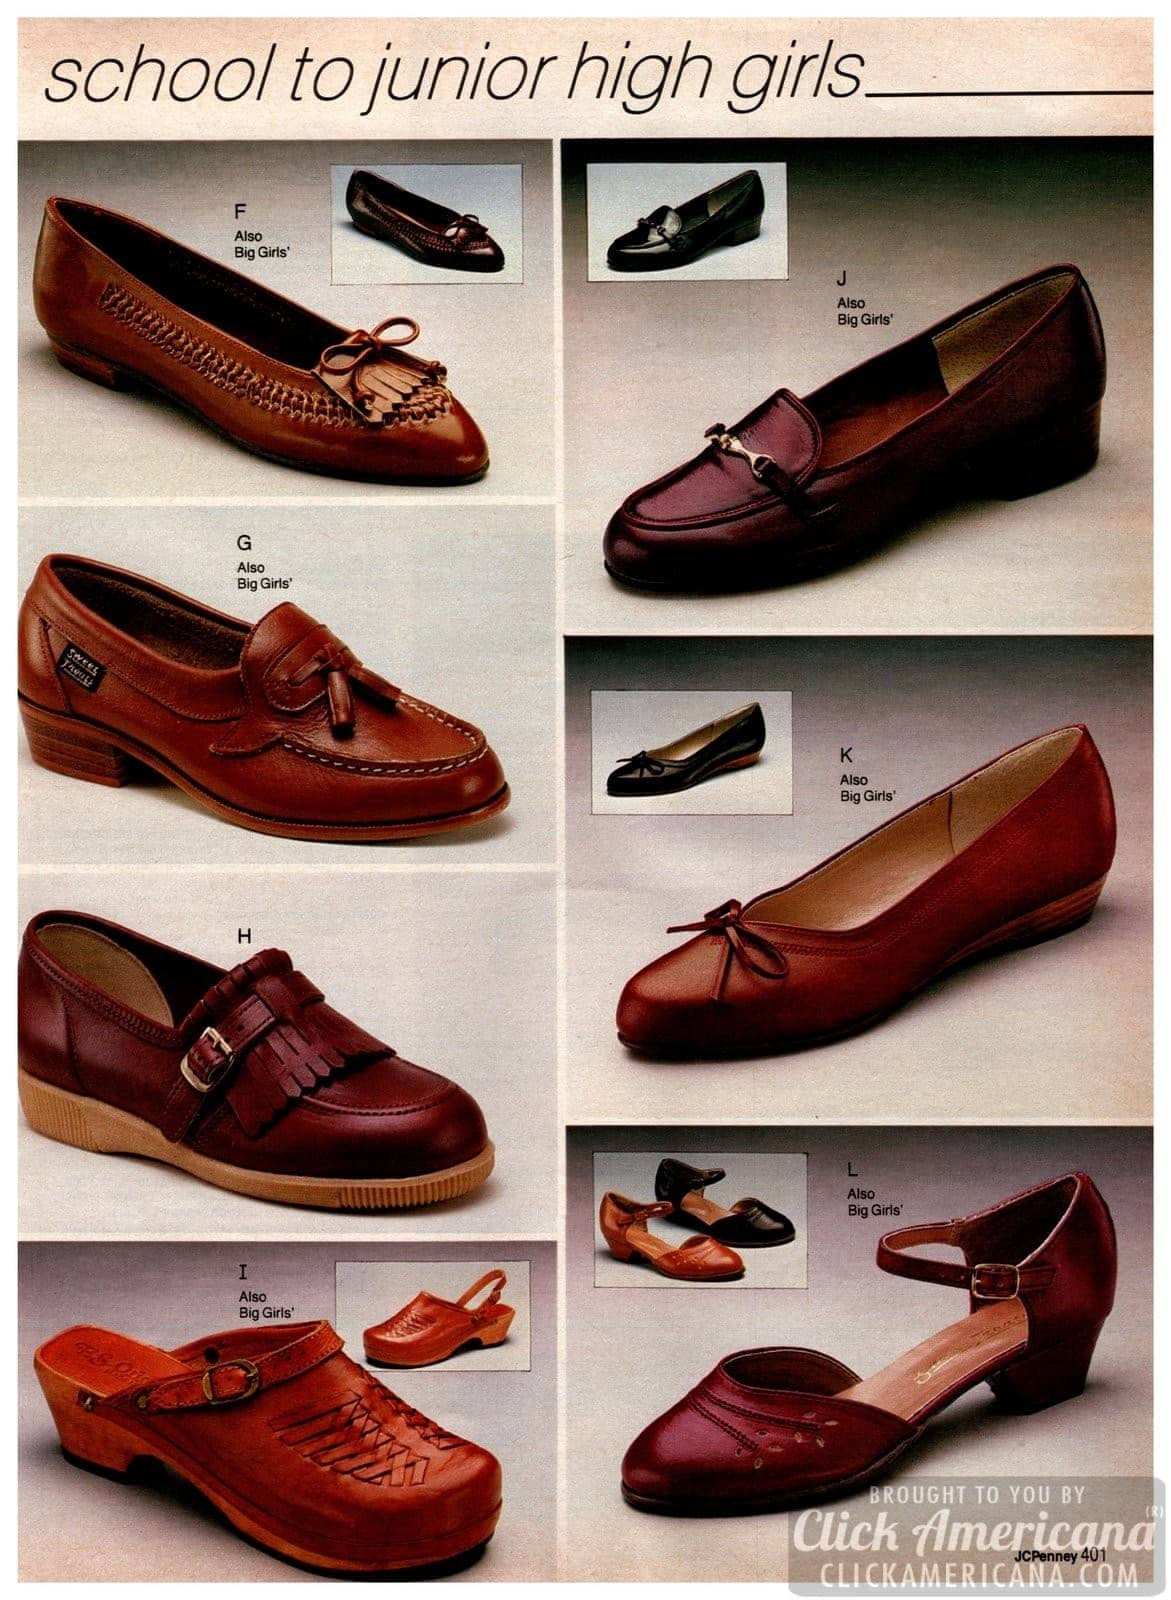 a81483fb6a Preppy shoes for junior high girls - brown, tan and beige leather shoes